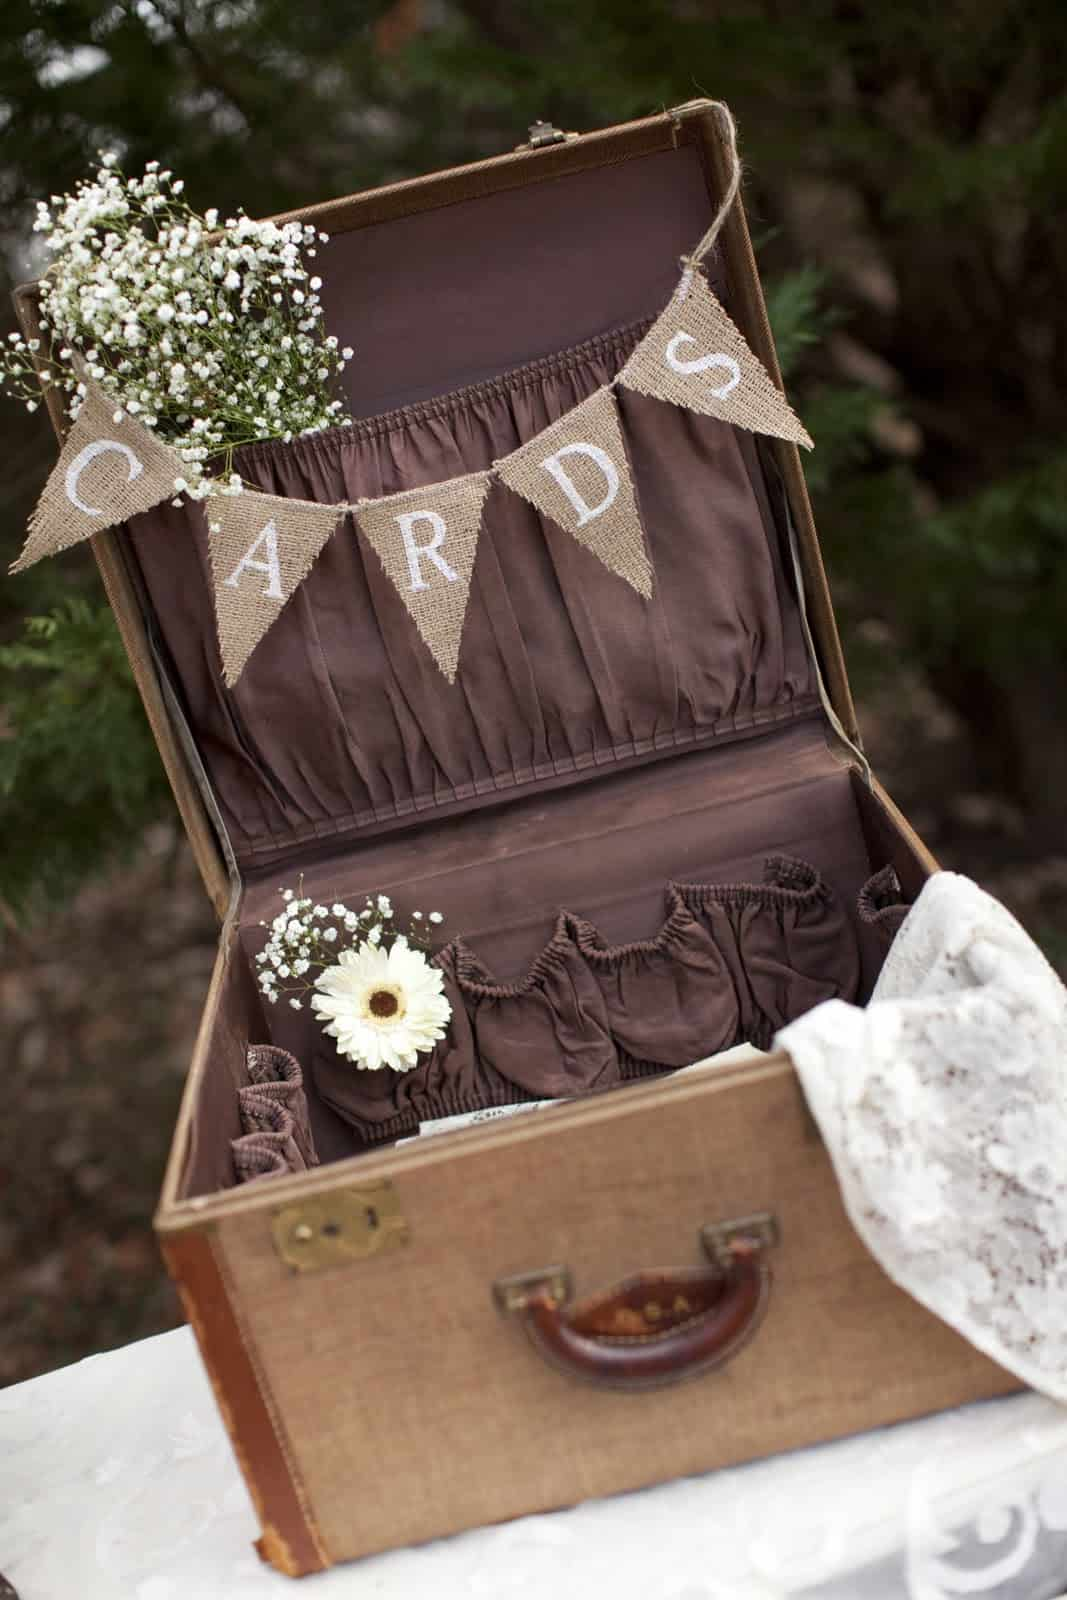 25 Beautifully Creative Ways to Recycle Vintage Suitcases at Home homesthetics decor (22)